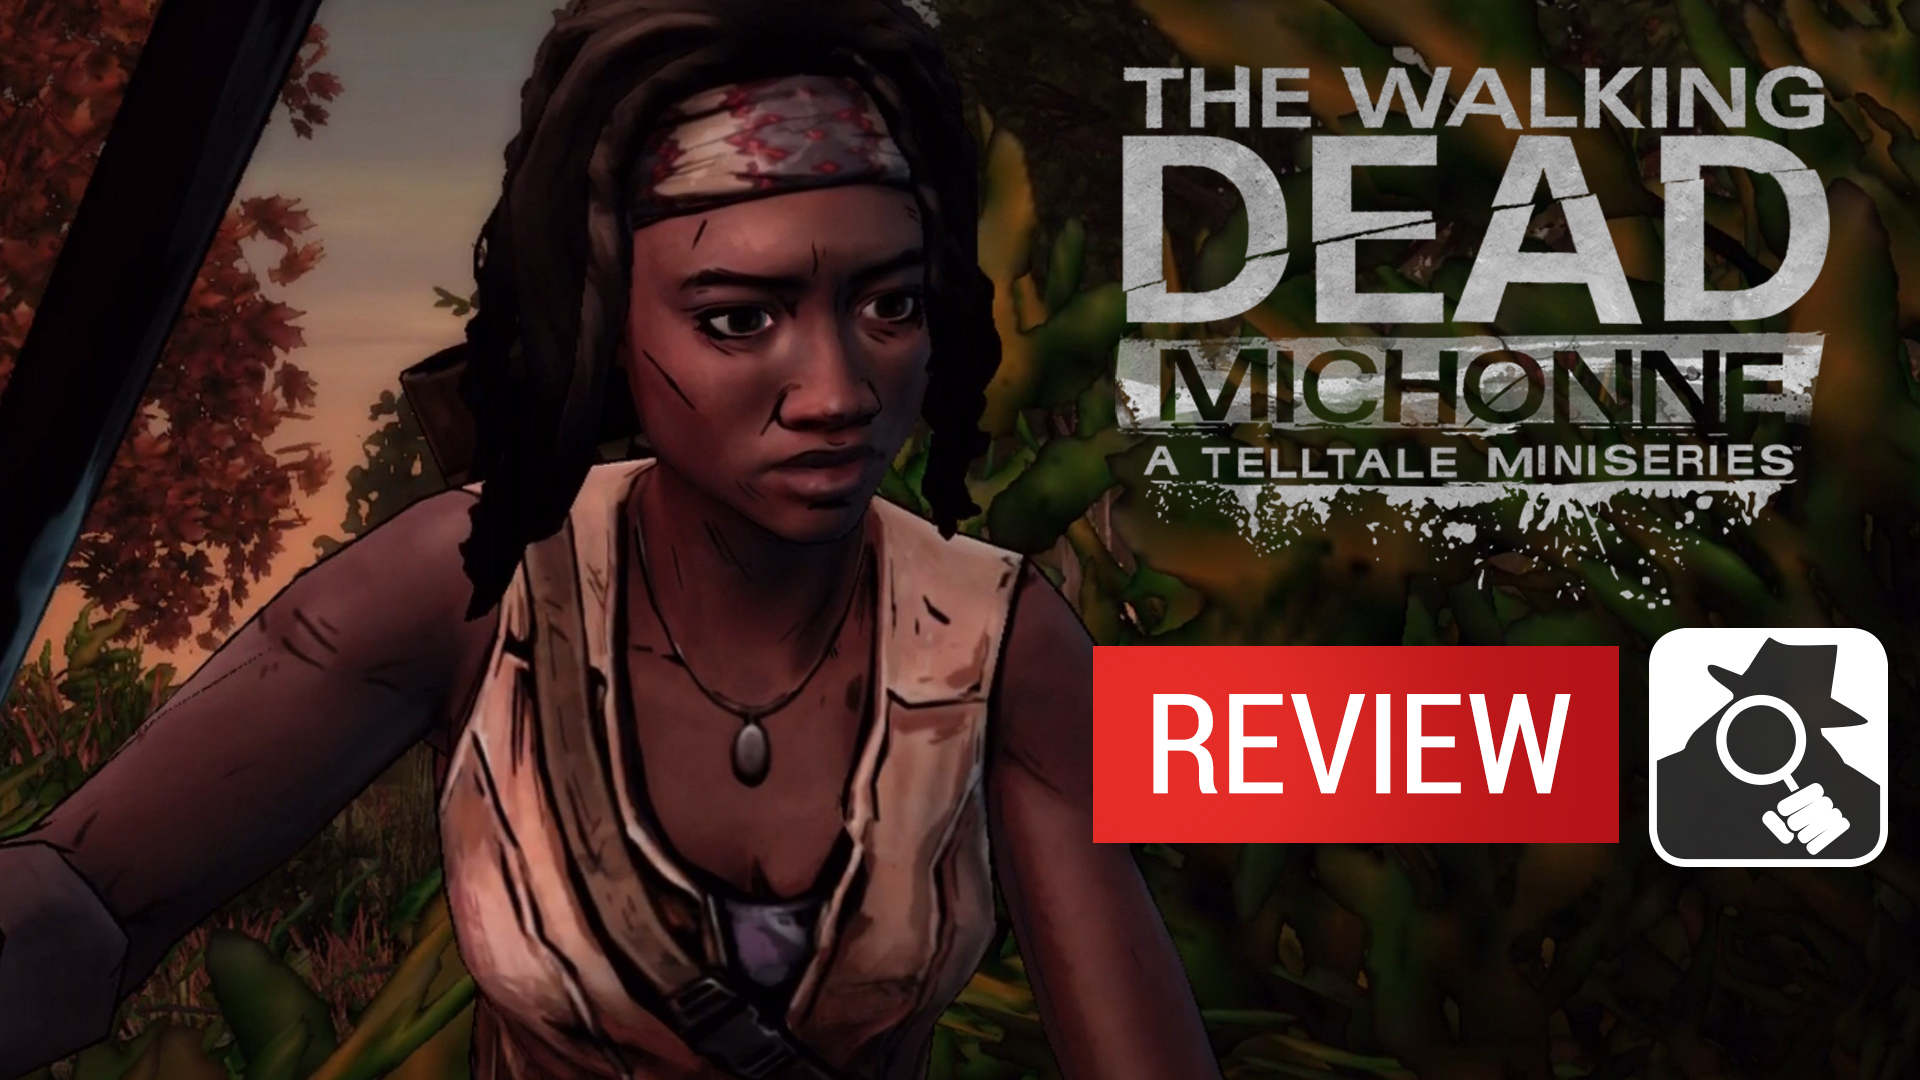 The Walking Dead: Michonne - Video Review (Spoiler free!)